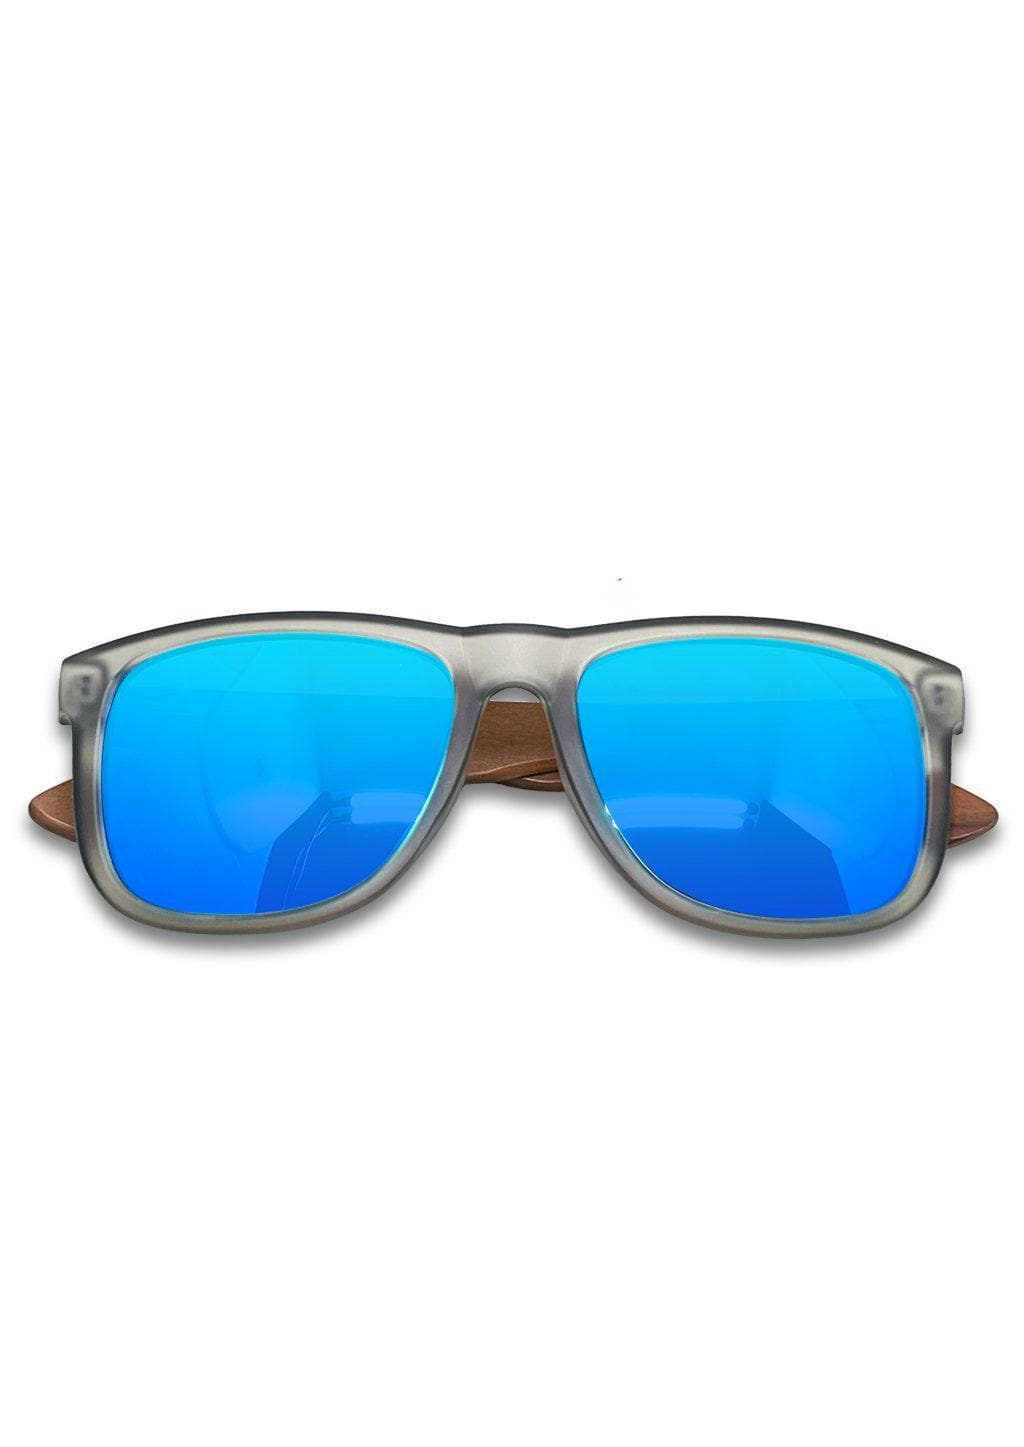 Eyewood Wayfarer - Mist - Beautiful wooden sunglasses with foggy transparent front with awesome blue mirror lenses.